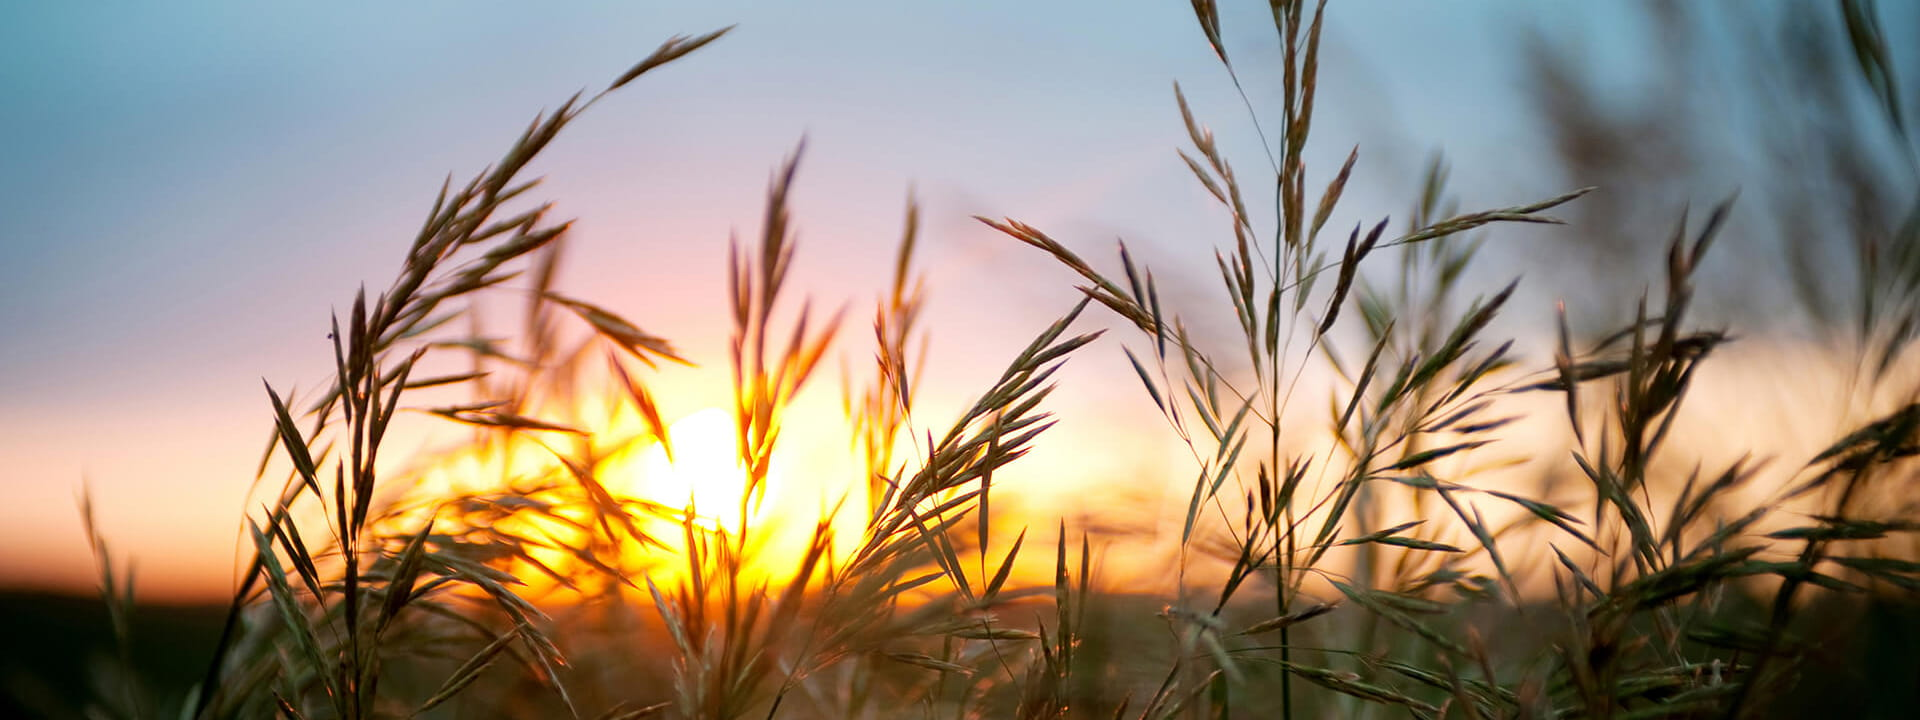 A close-up of wheat at sunset.